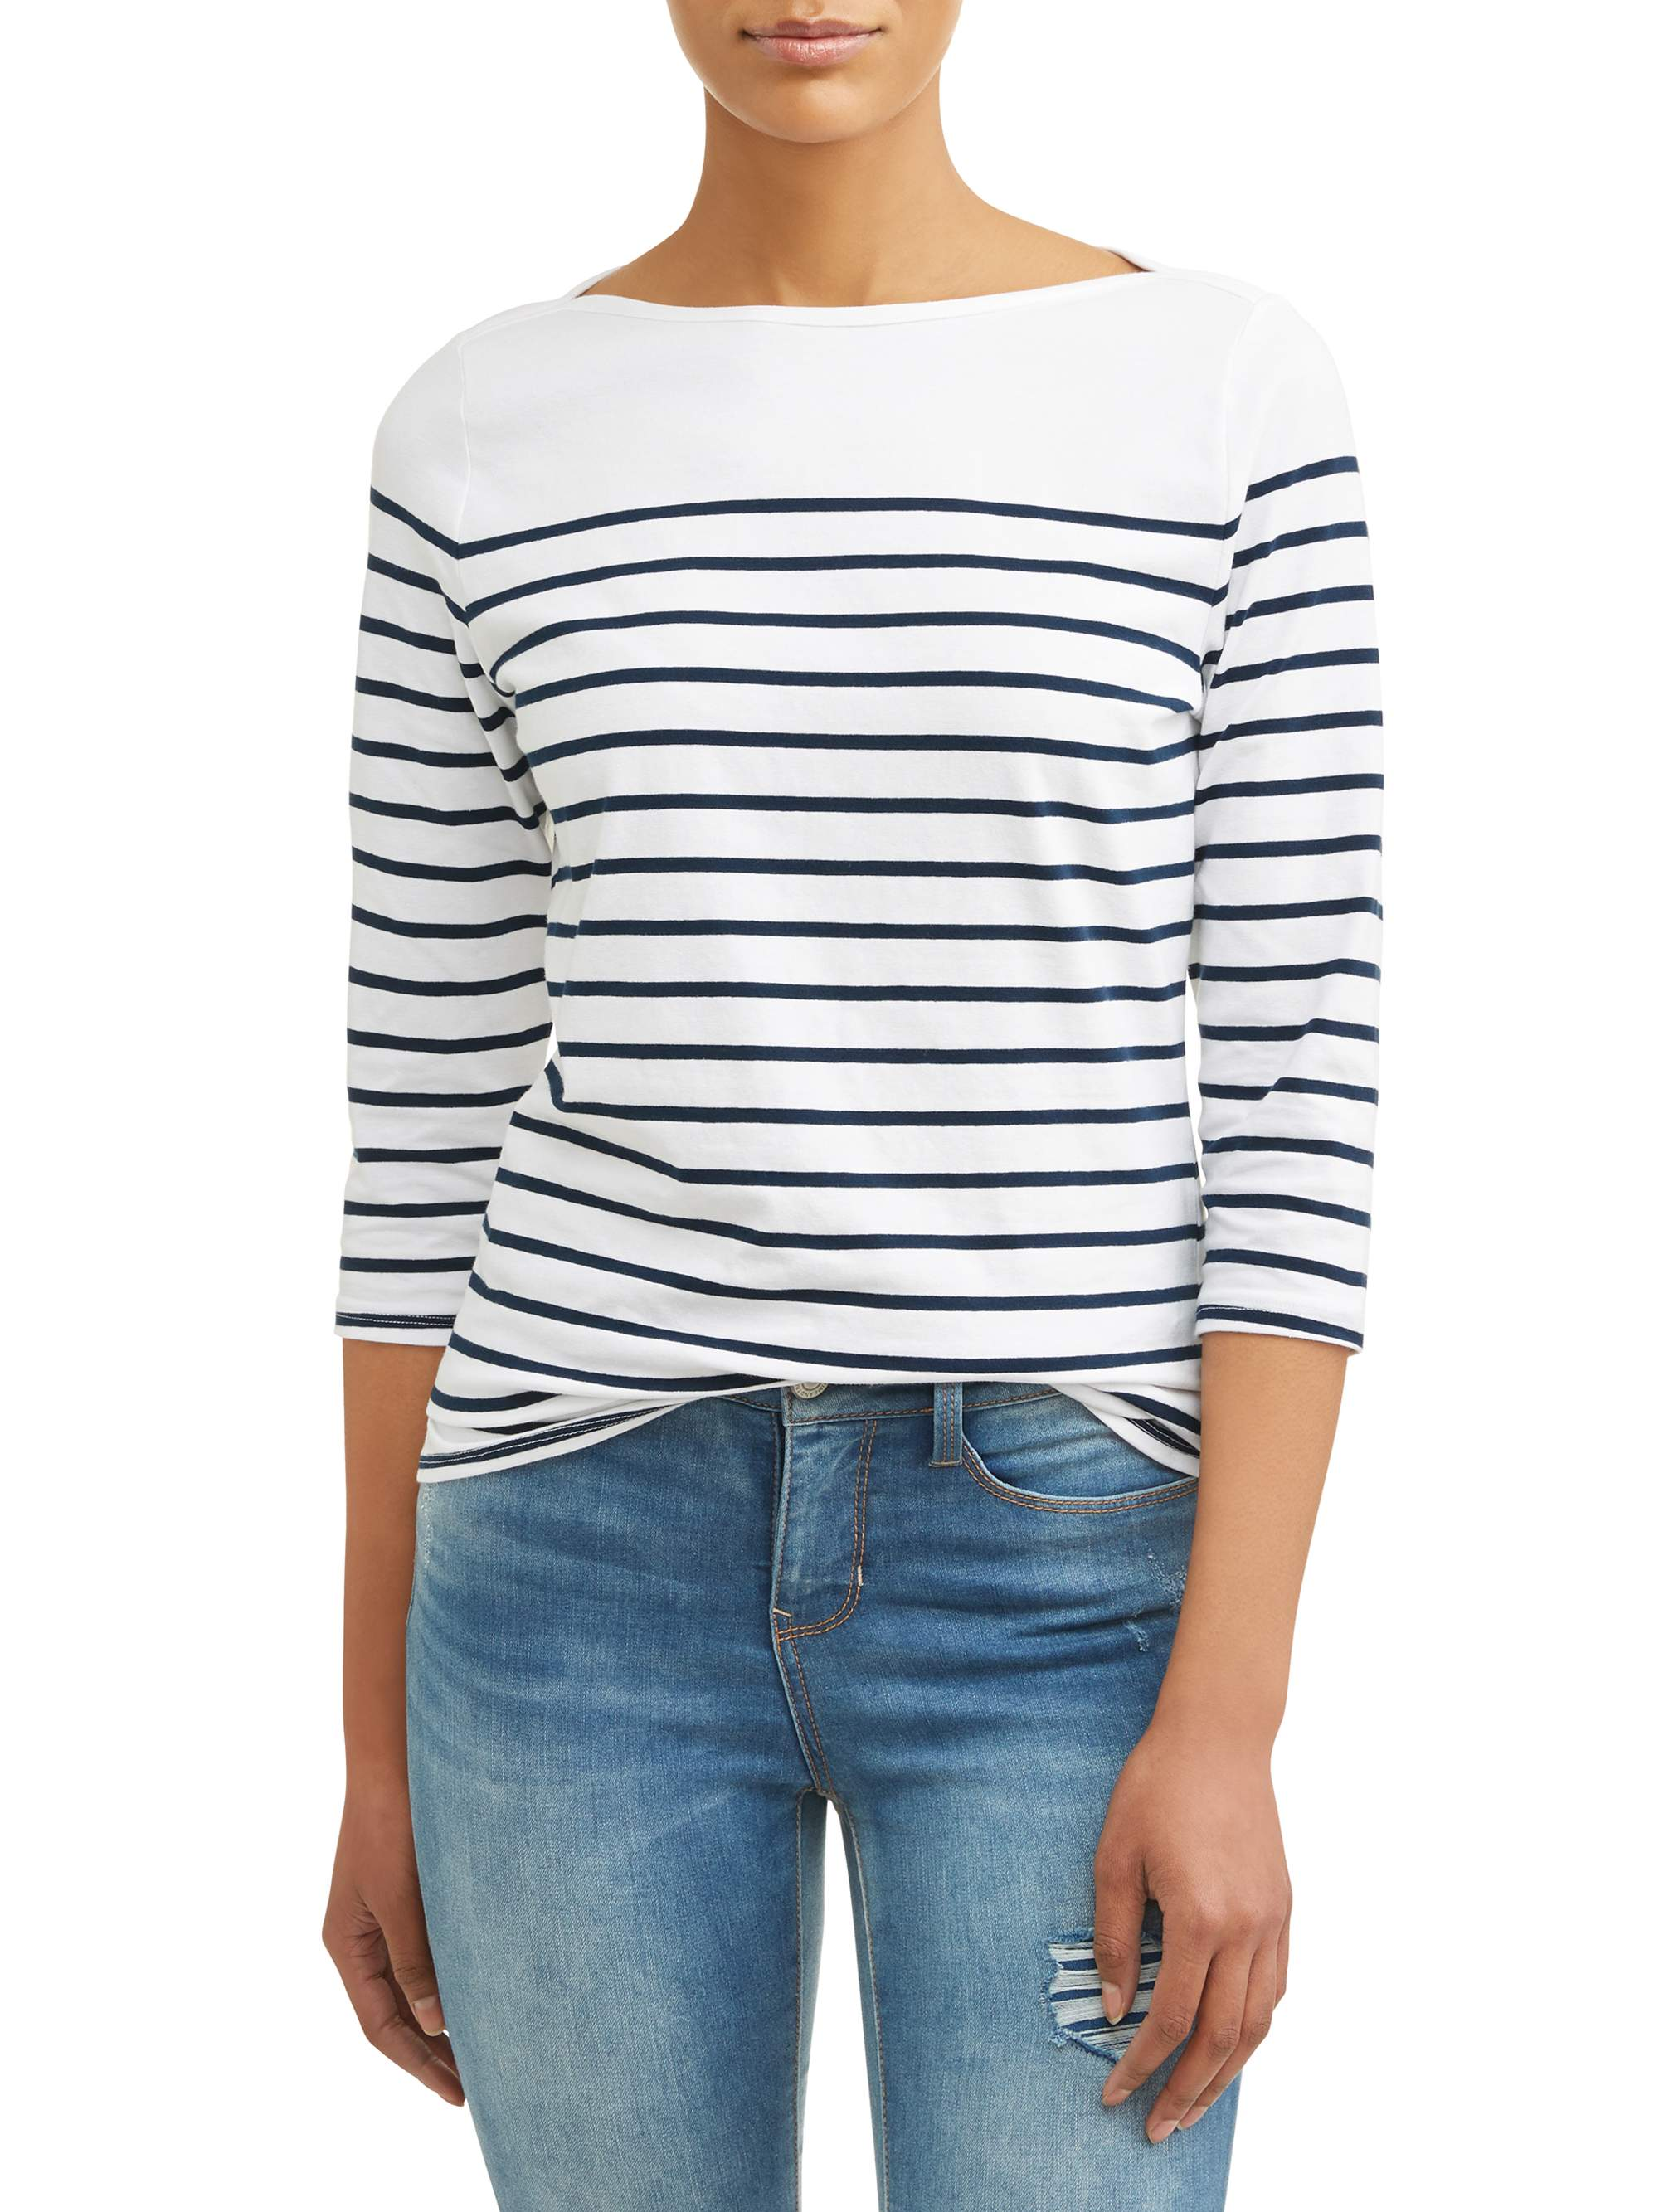 266a13ef572 Time and Tru - Women's 3/4 Sleeve Classic Boatneck Top - Walmart.com